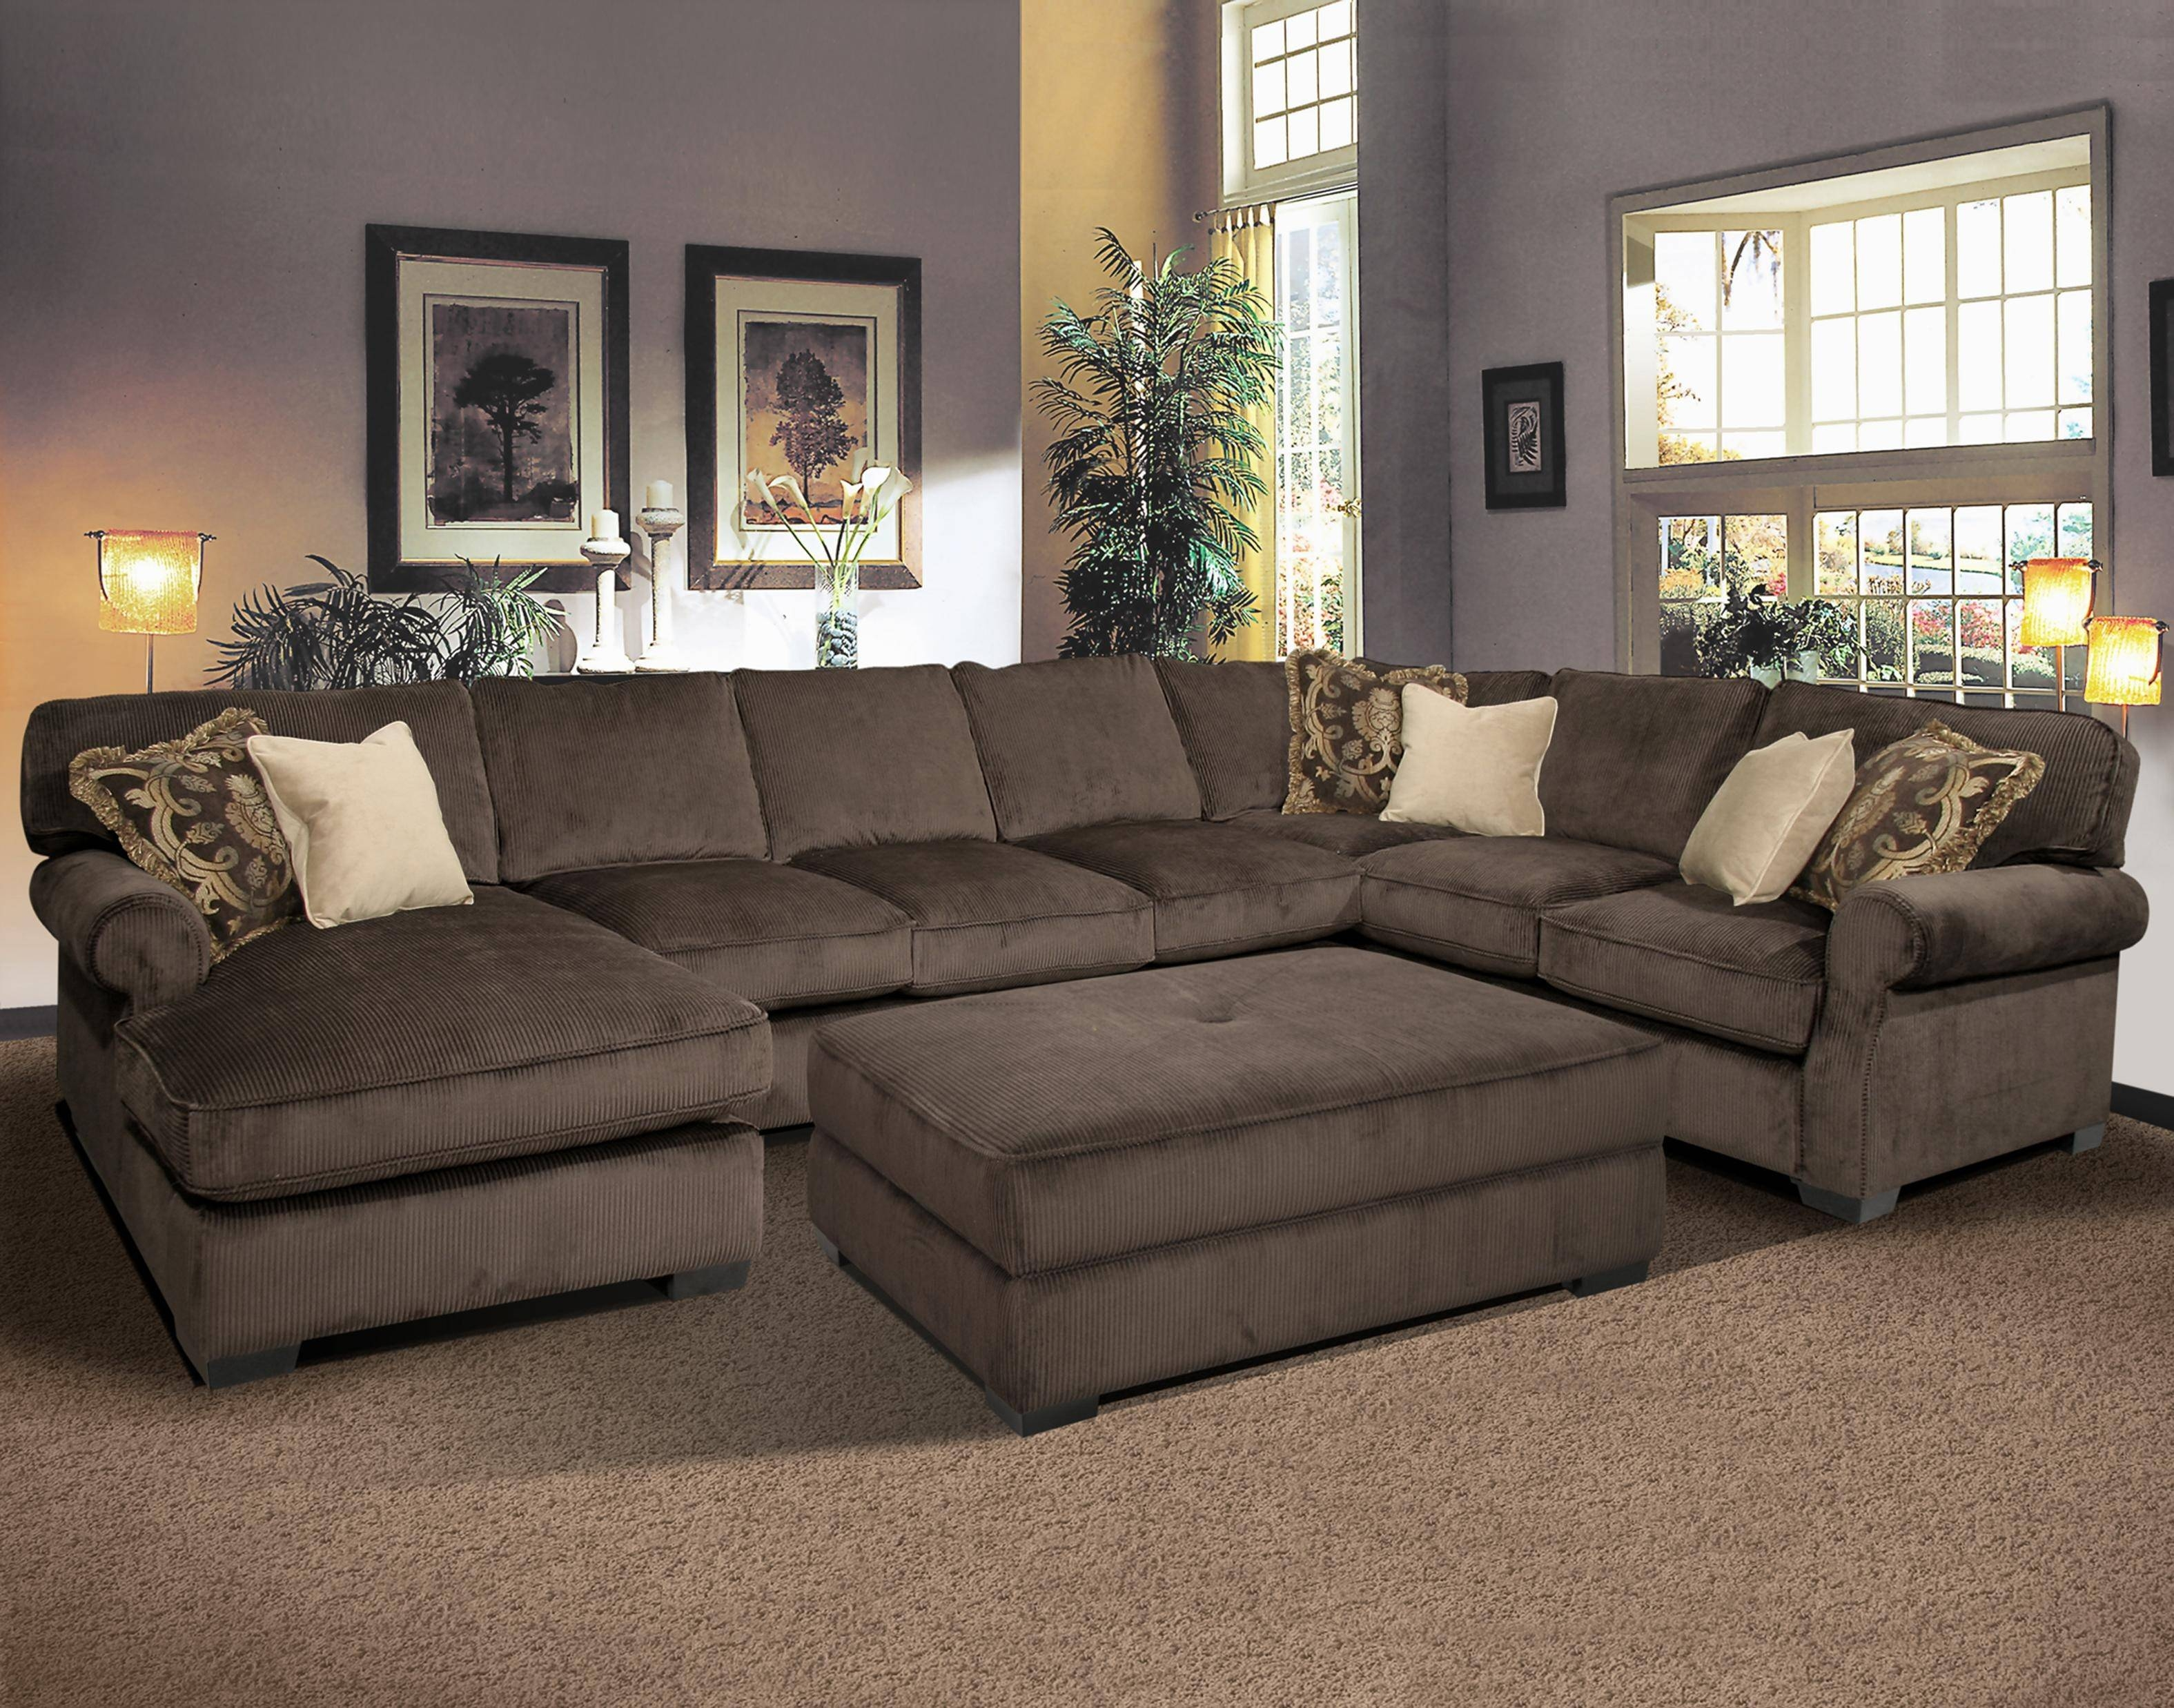 Sofas Center : Huge Sectional Sofa Sofas Center U Usect4S Jpg with regard to Huge Sofas (Image 27 of 30)